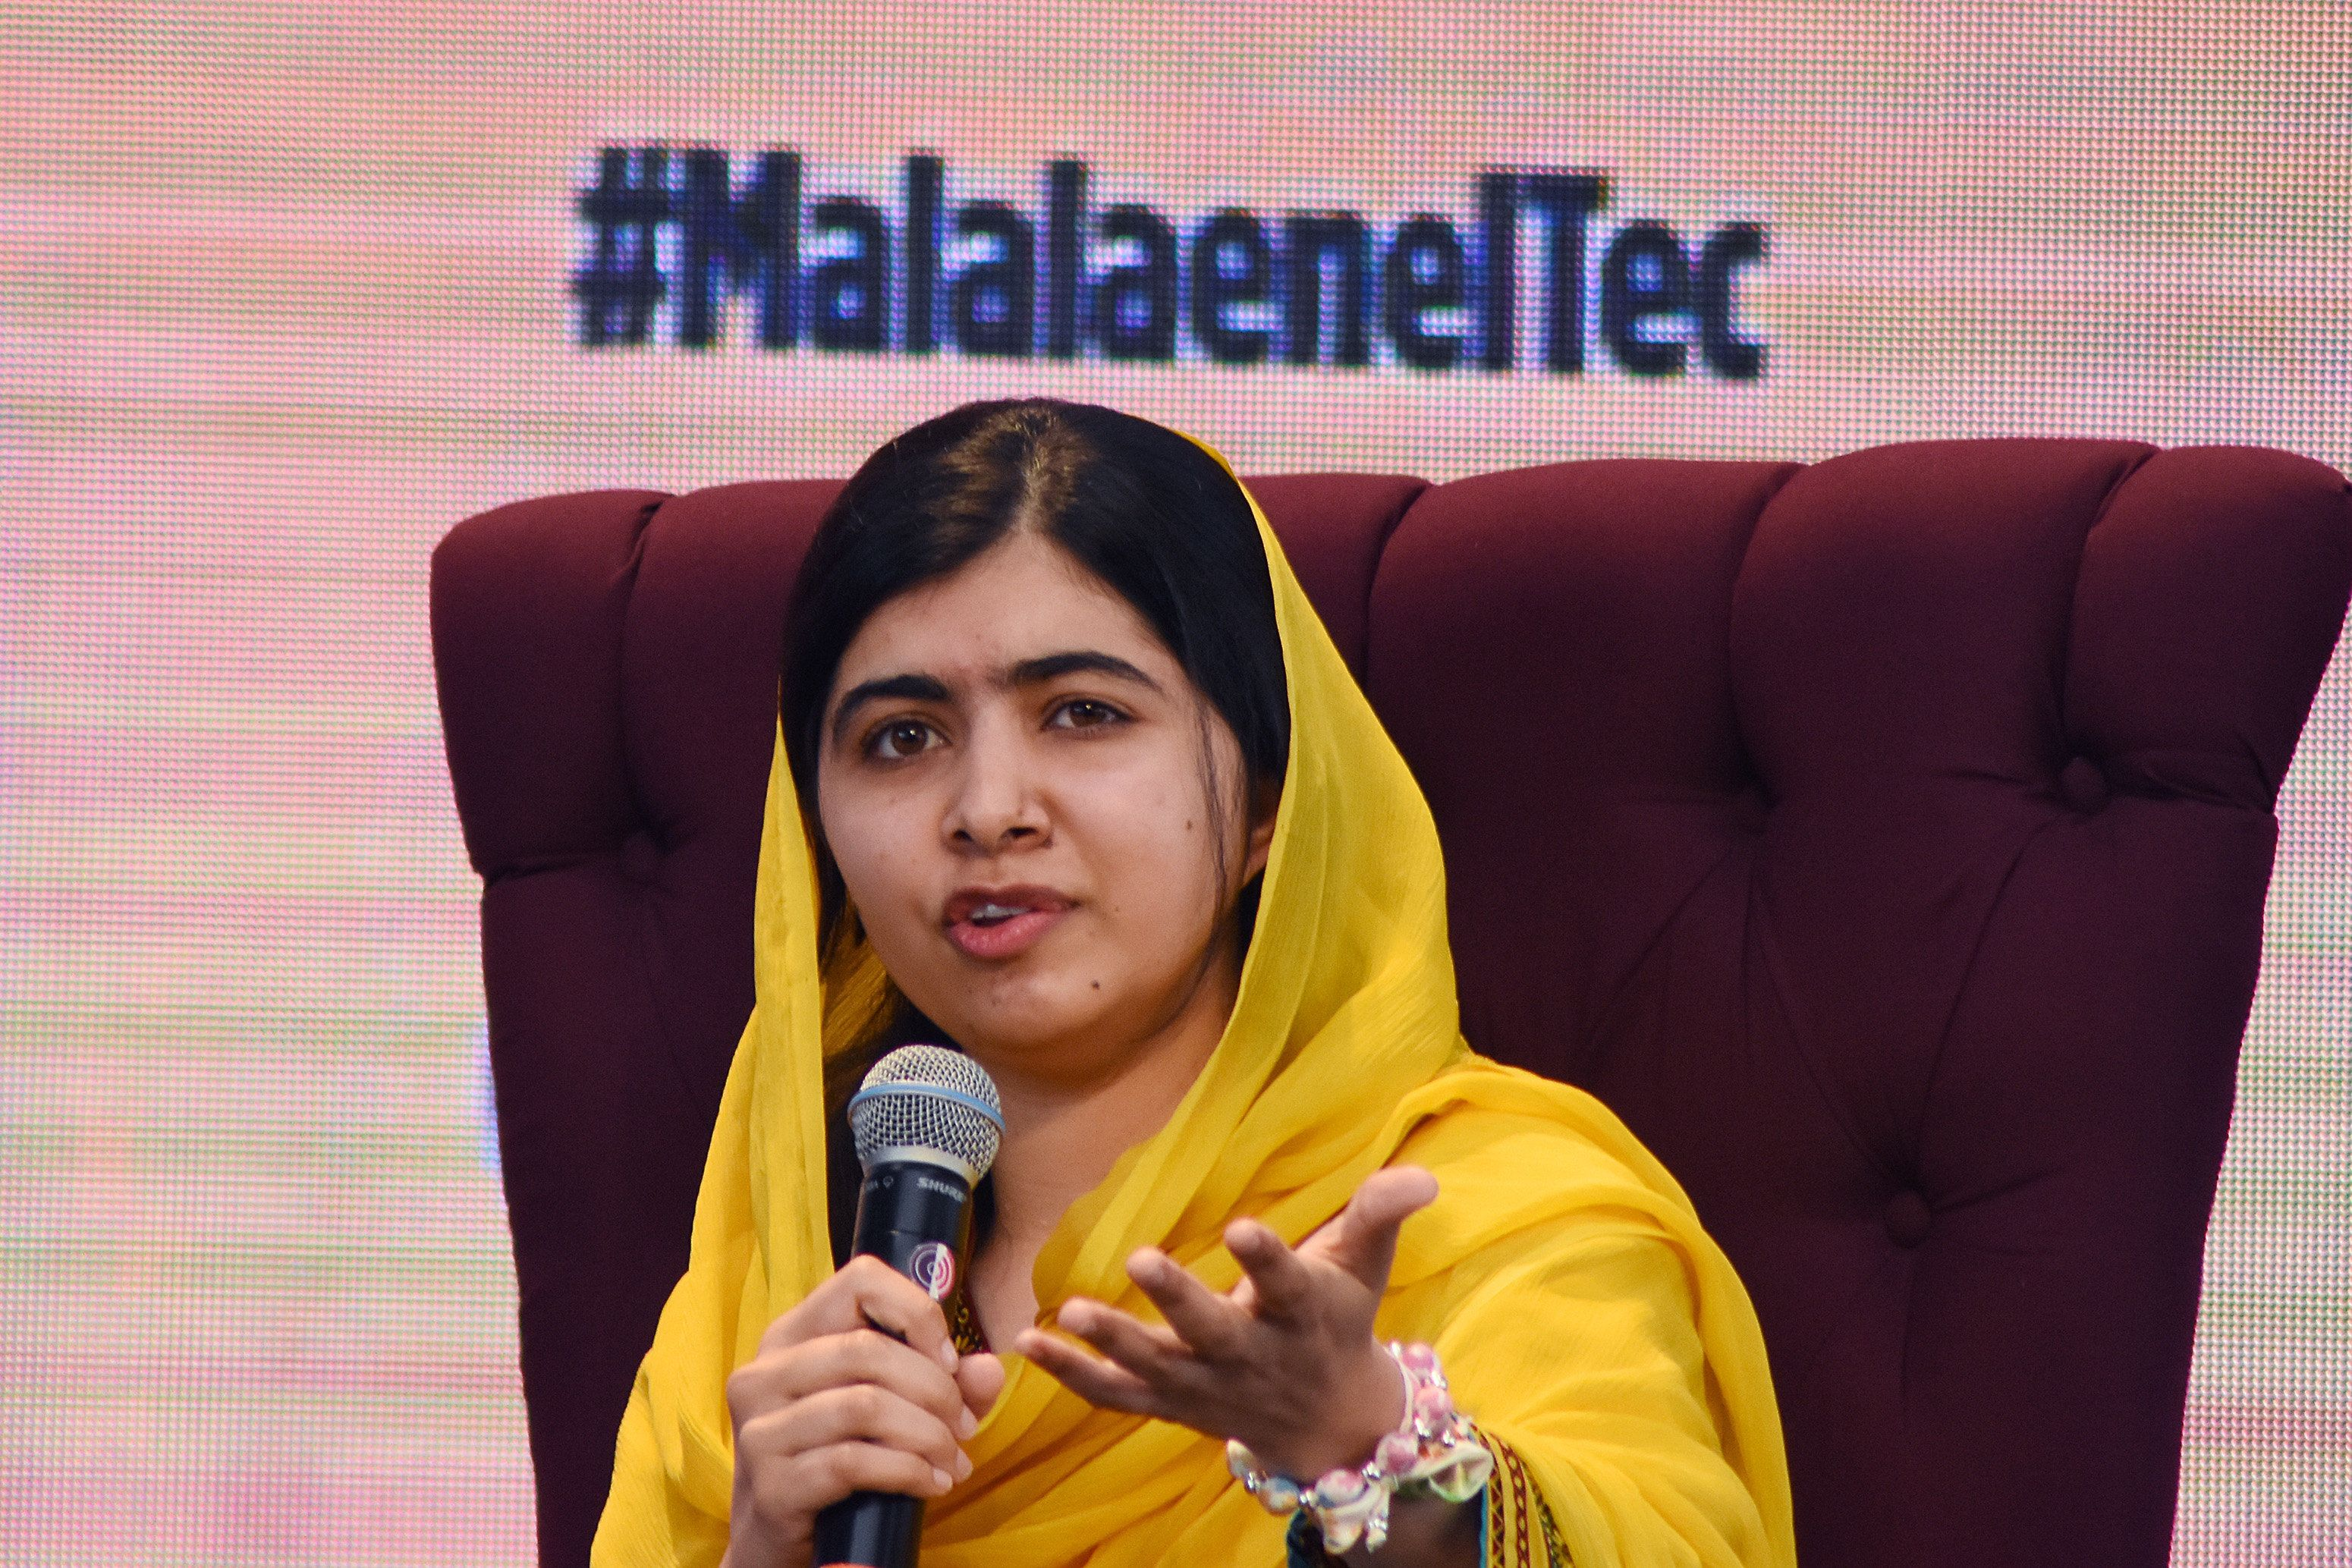 Activist Malala Yousafzai was awarded the Nobel Peace Prize at the age of 17 after surviving an assassination attempt by